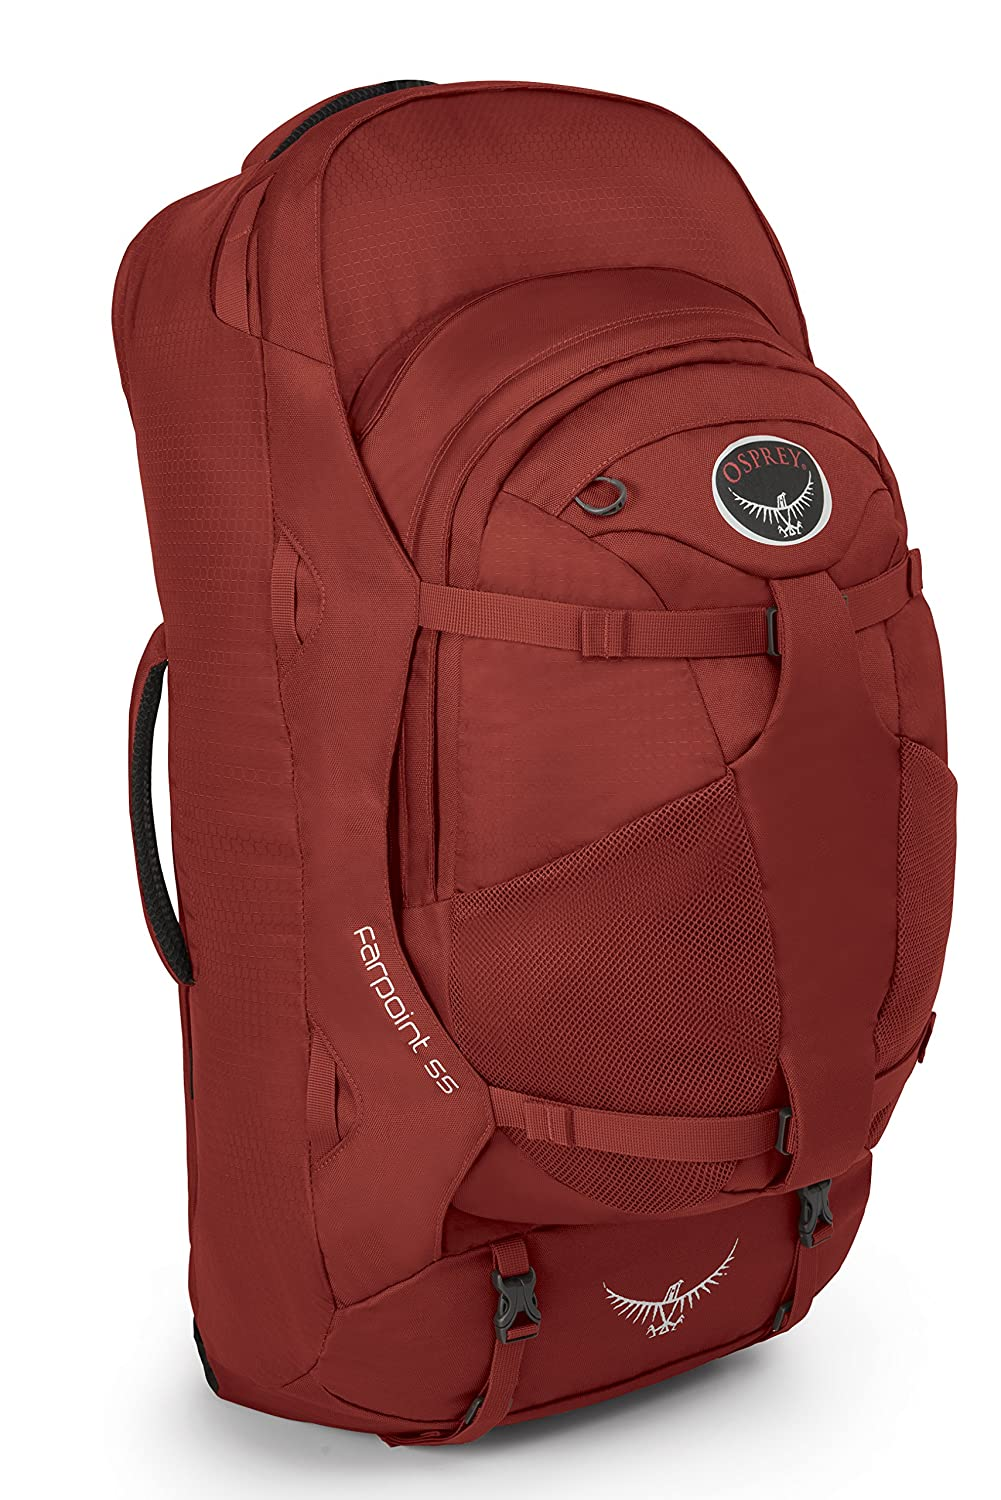 Osprey Packs Farpoint 55 Travel Backpack 10000291-P